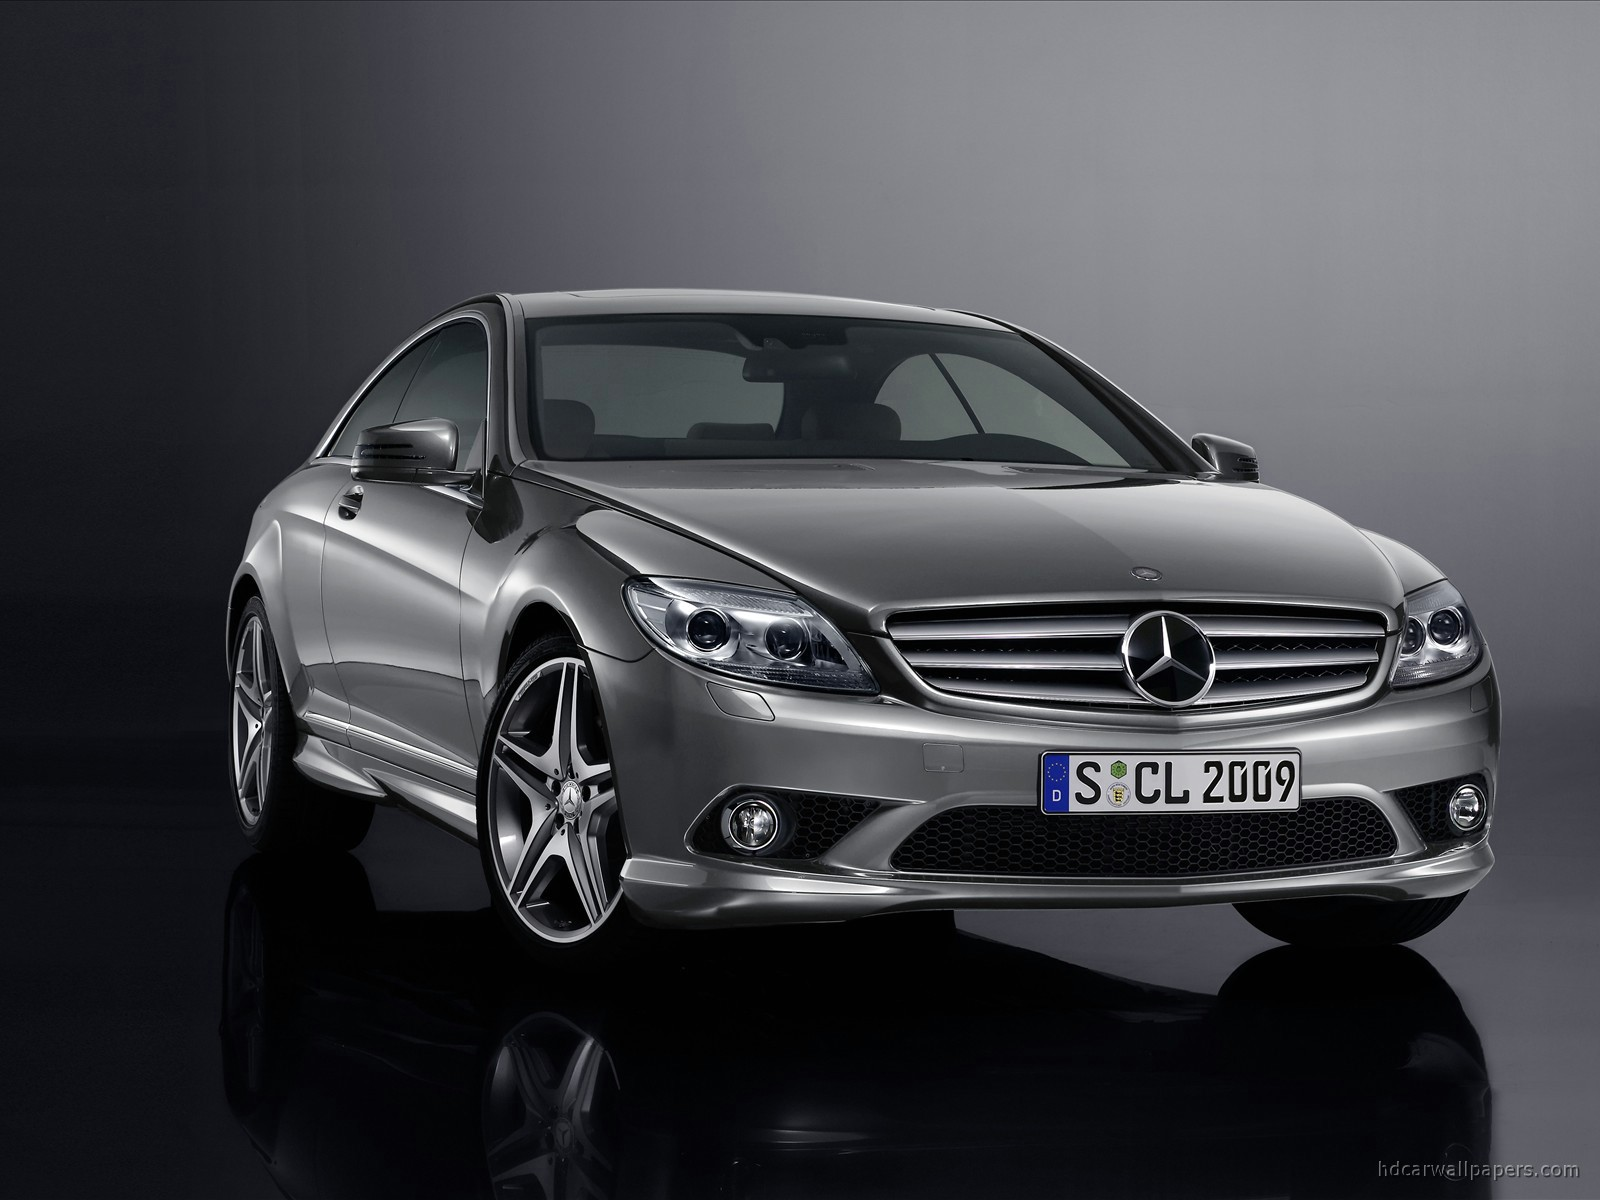 2010 mercedes benz s class sports wallpaper hd car wallpapers id 1219. Black Bedroom Furniture Sets. Home Design Ideas